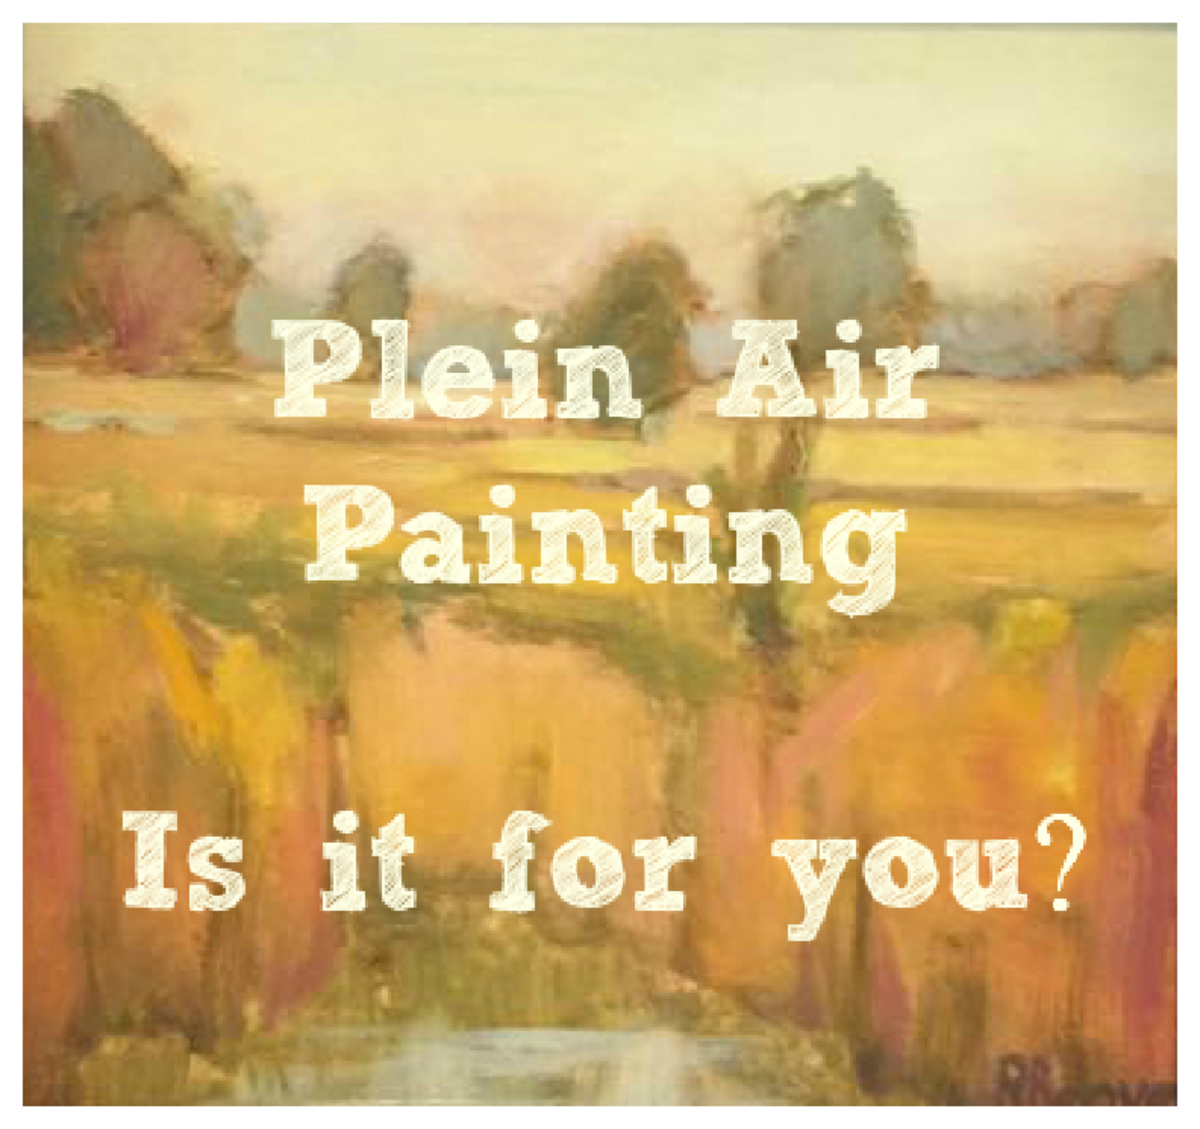 En Plein Air Painting: Is It for You?